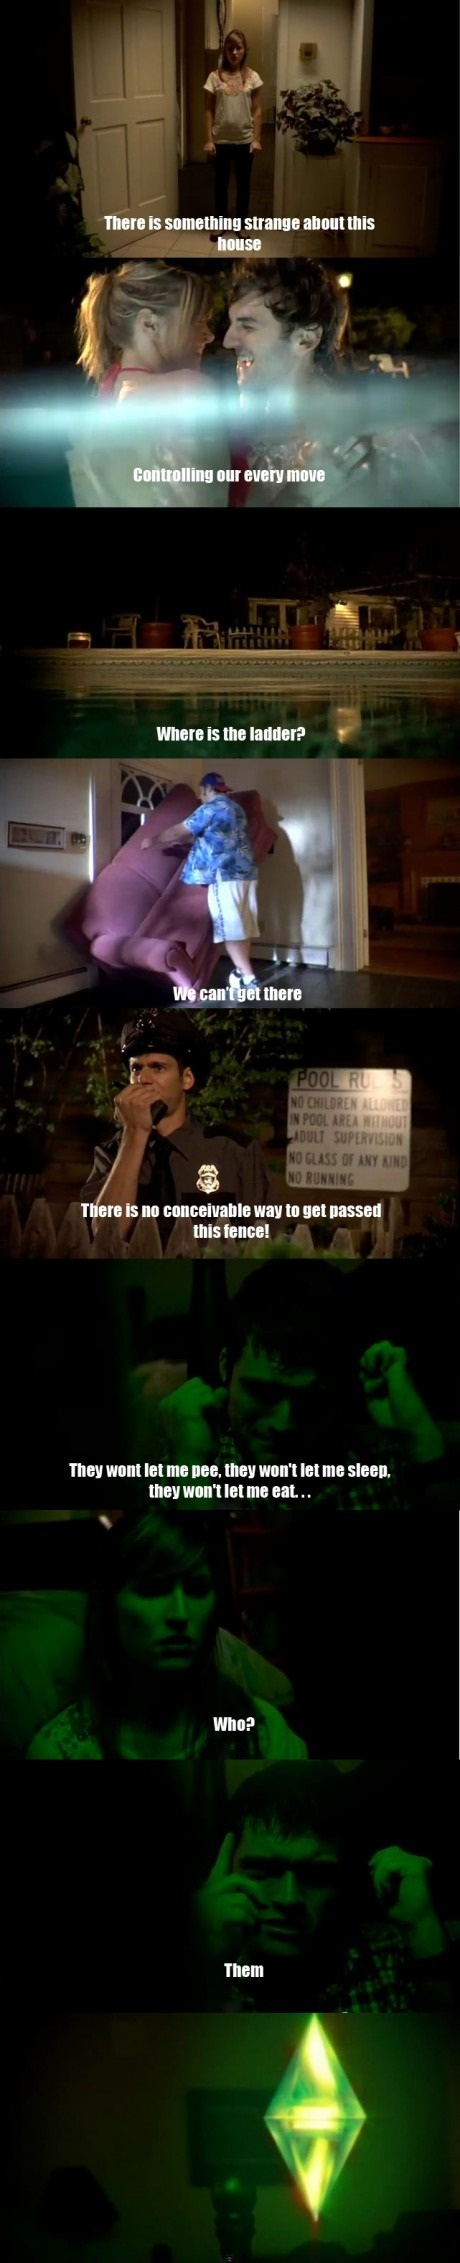 The Sims Real Life - LOL--- I want this movie!!! and they should make it good.